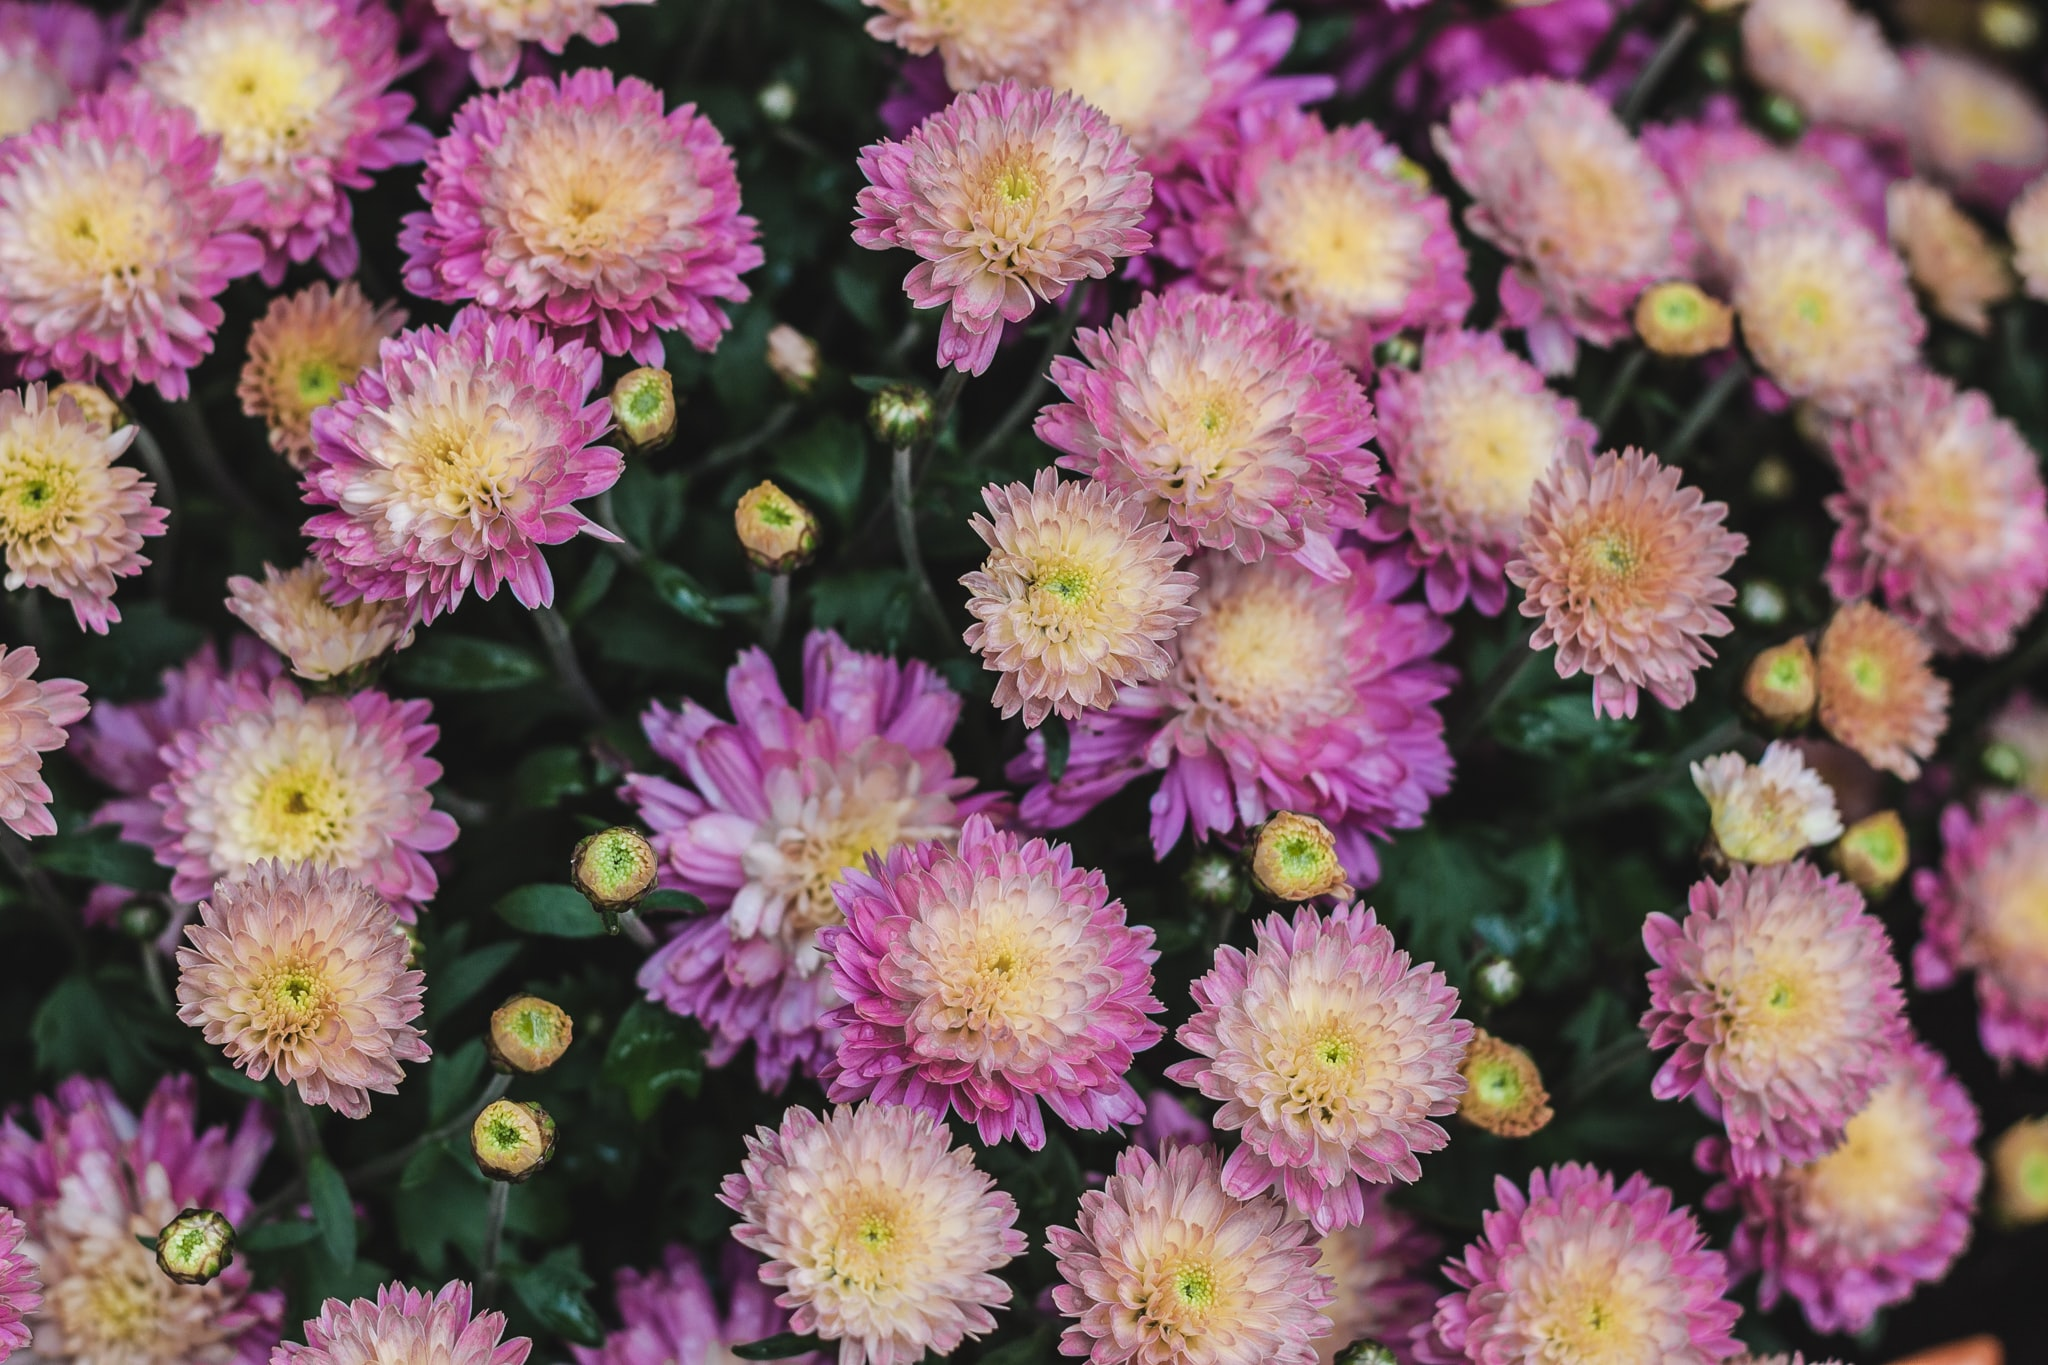 Top view of a bed of yellow and pink flowers